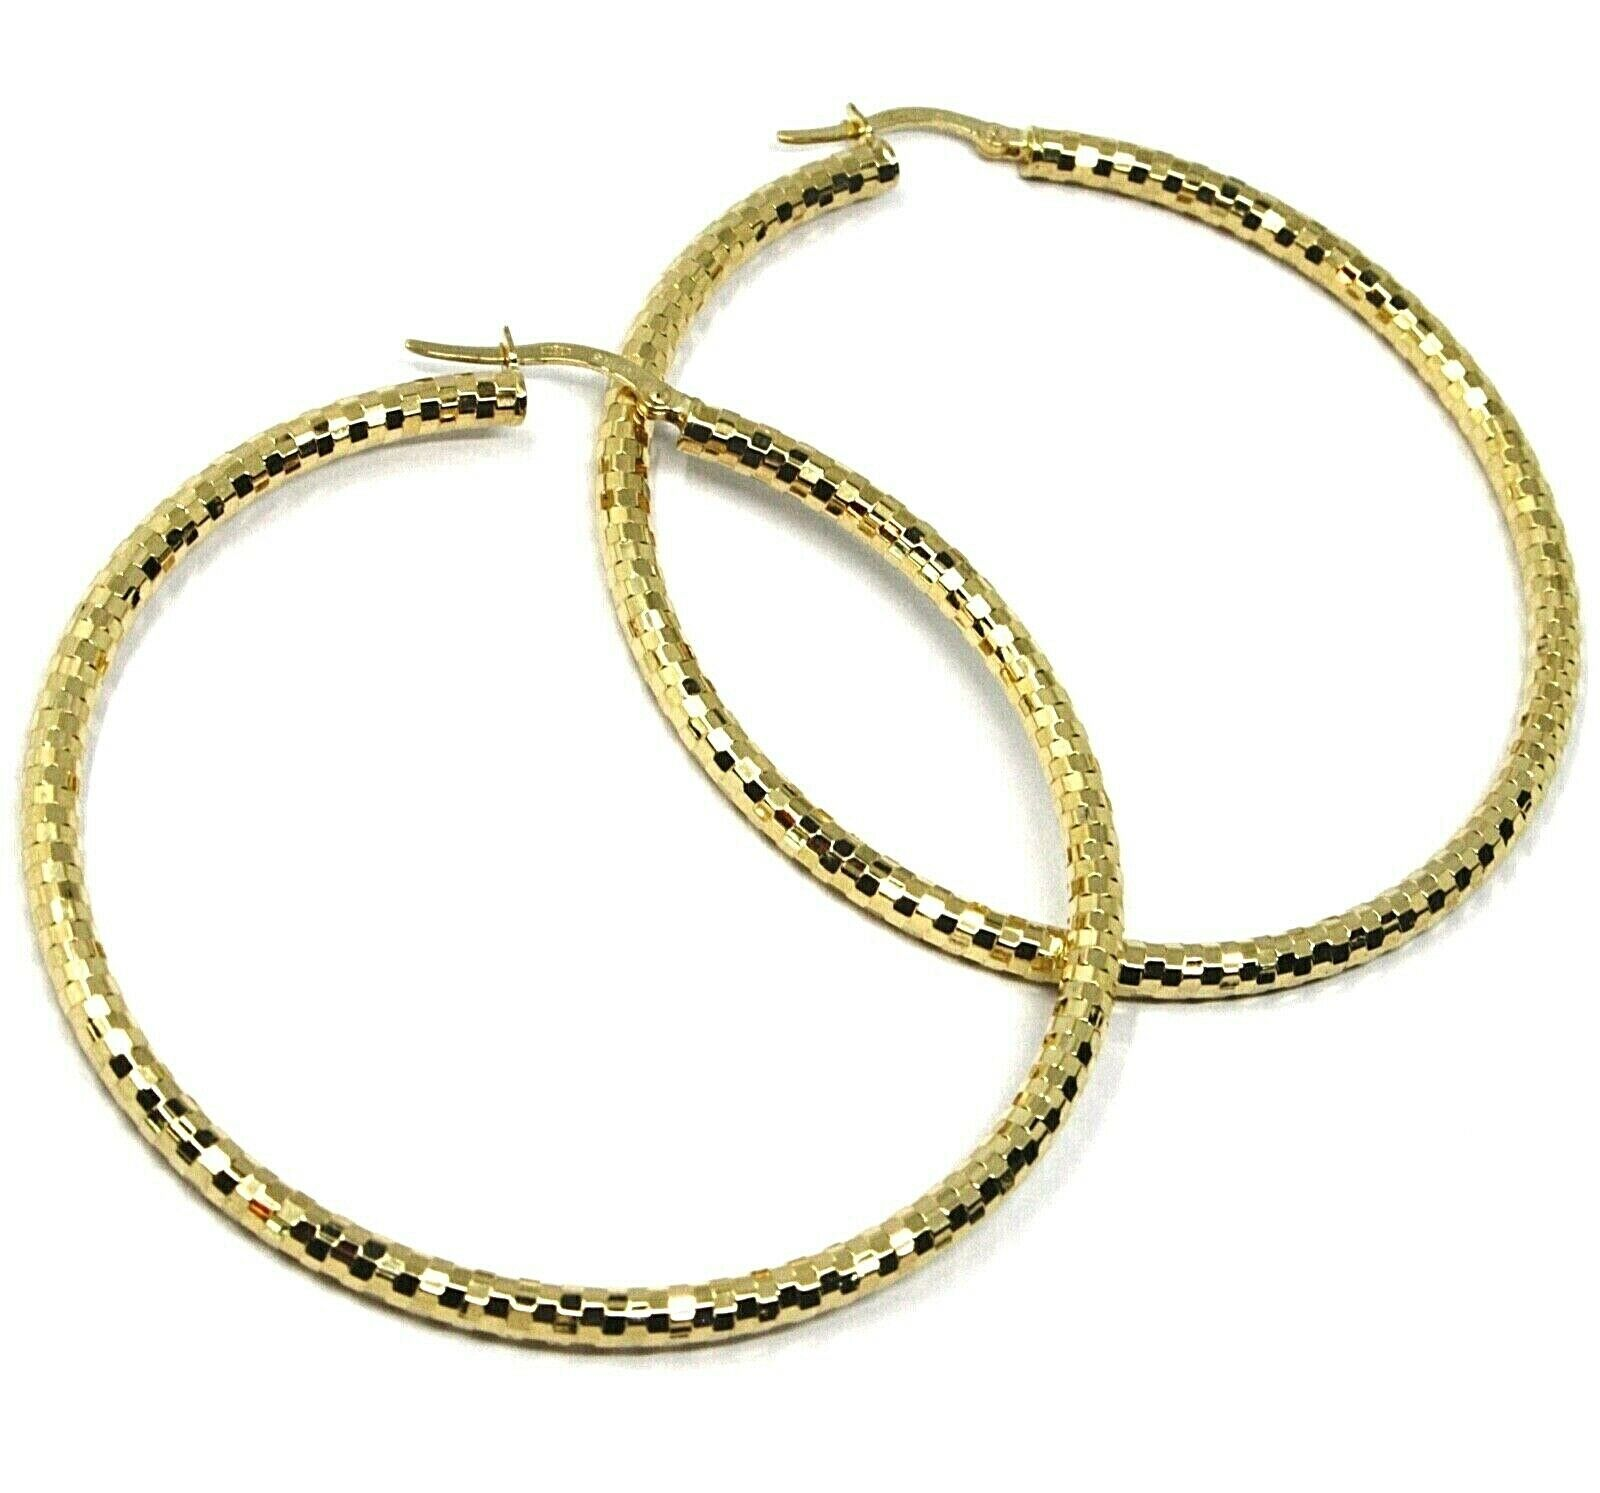 18K YELLOW GOLD CIRCLE HOOPS TUBE 3mm, BIG EARRINGS 5.5cm, SHINY FACETED SQUARES